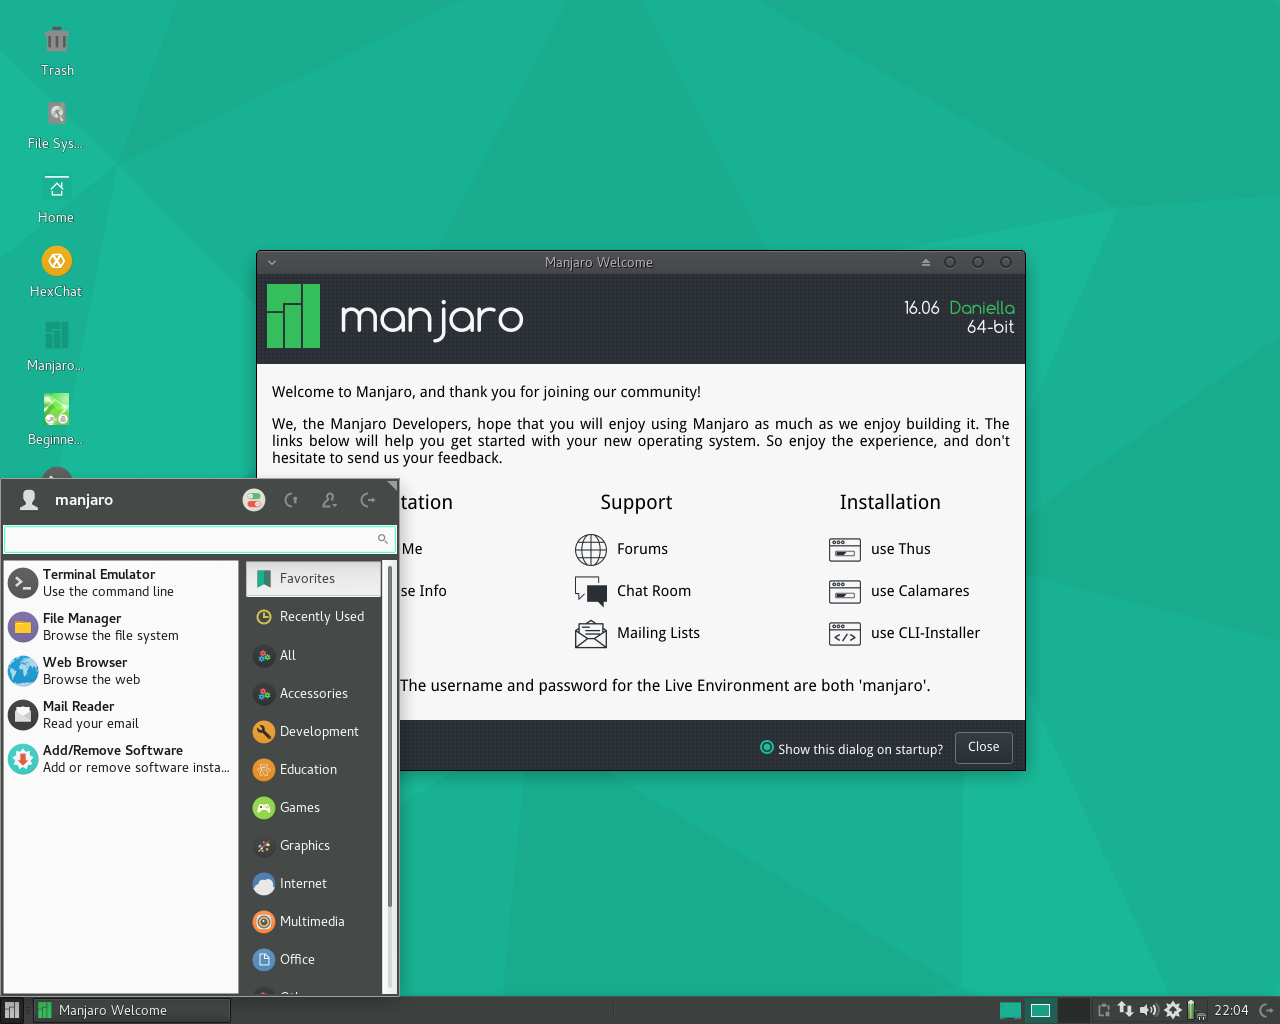 Philip Muller has announced a new release of Manjaro Linux, an Arch